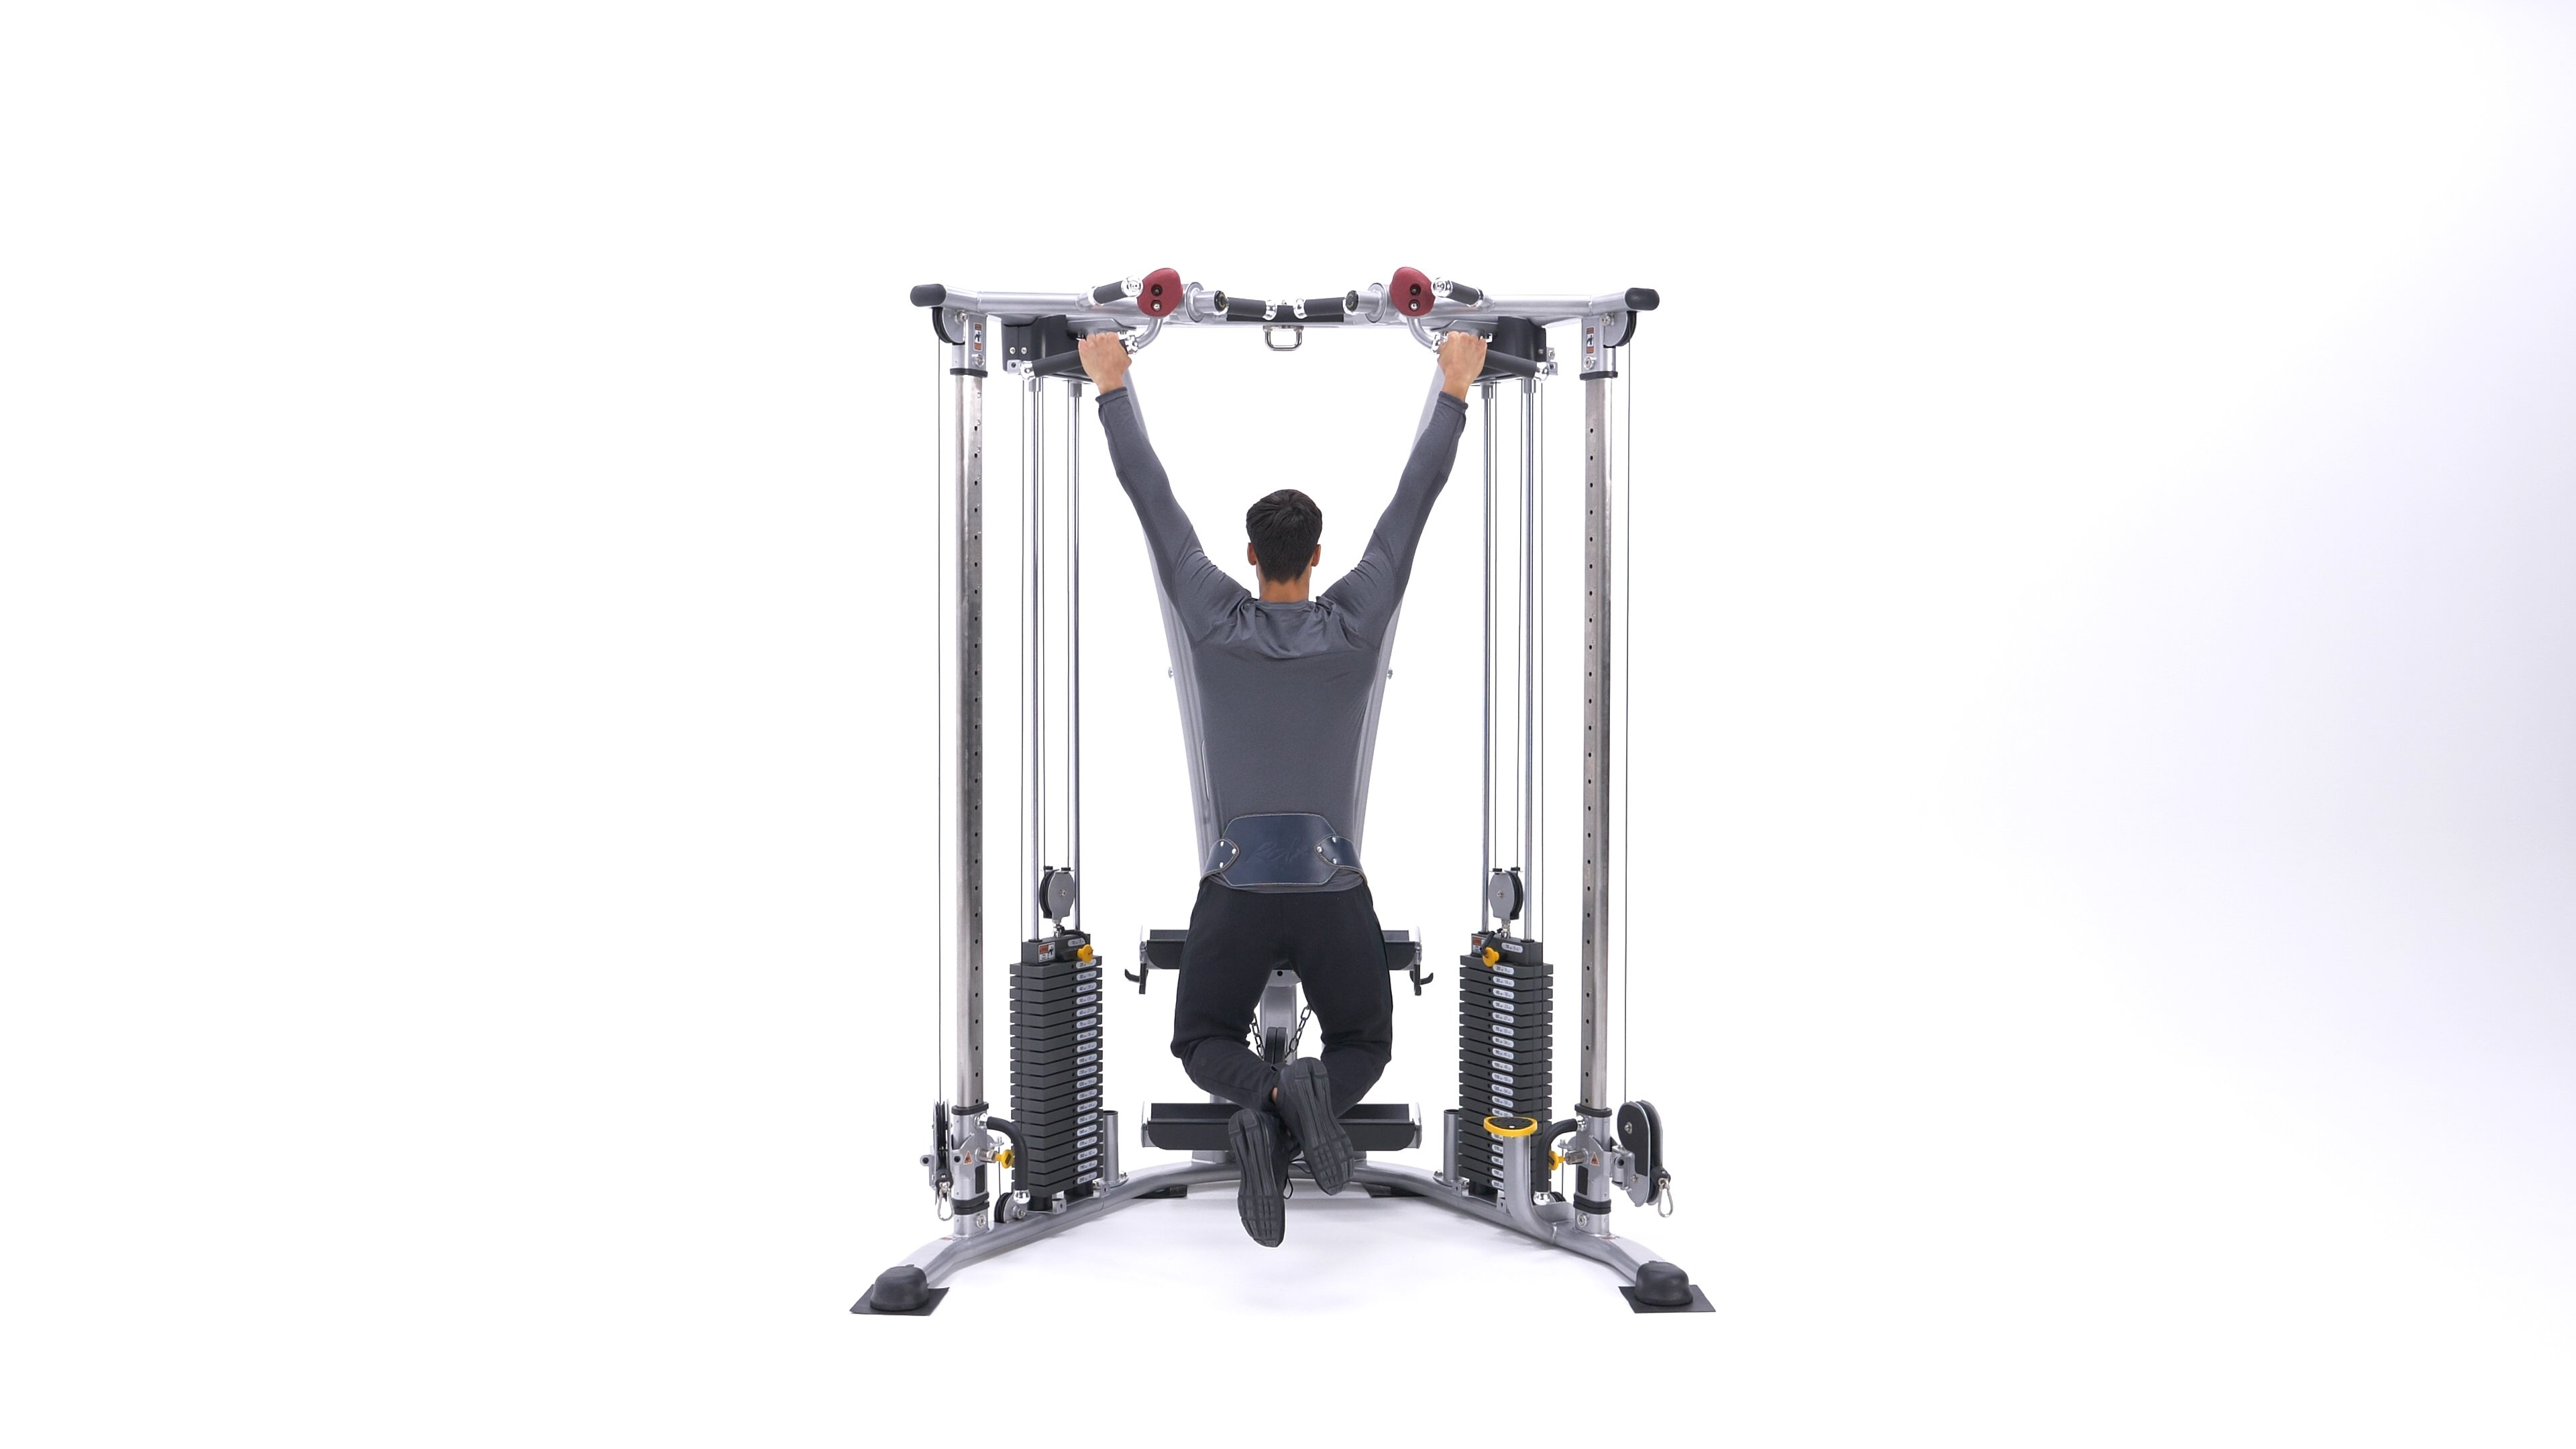 Weighted pull-up image